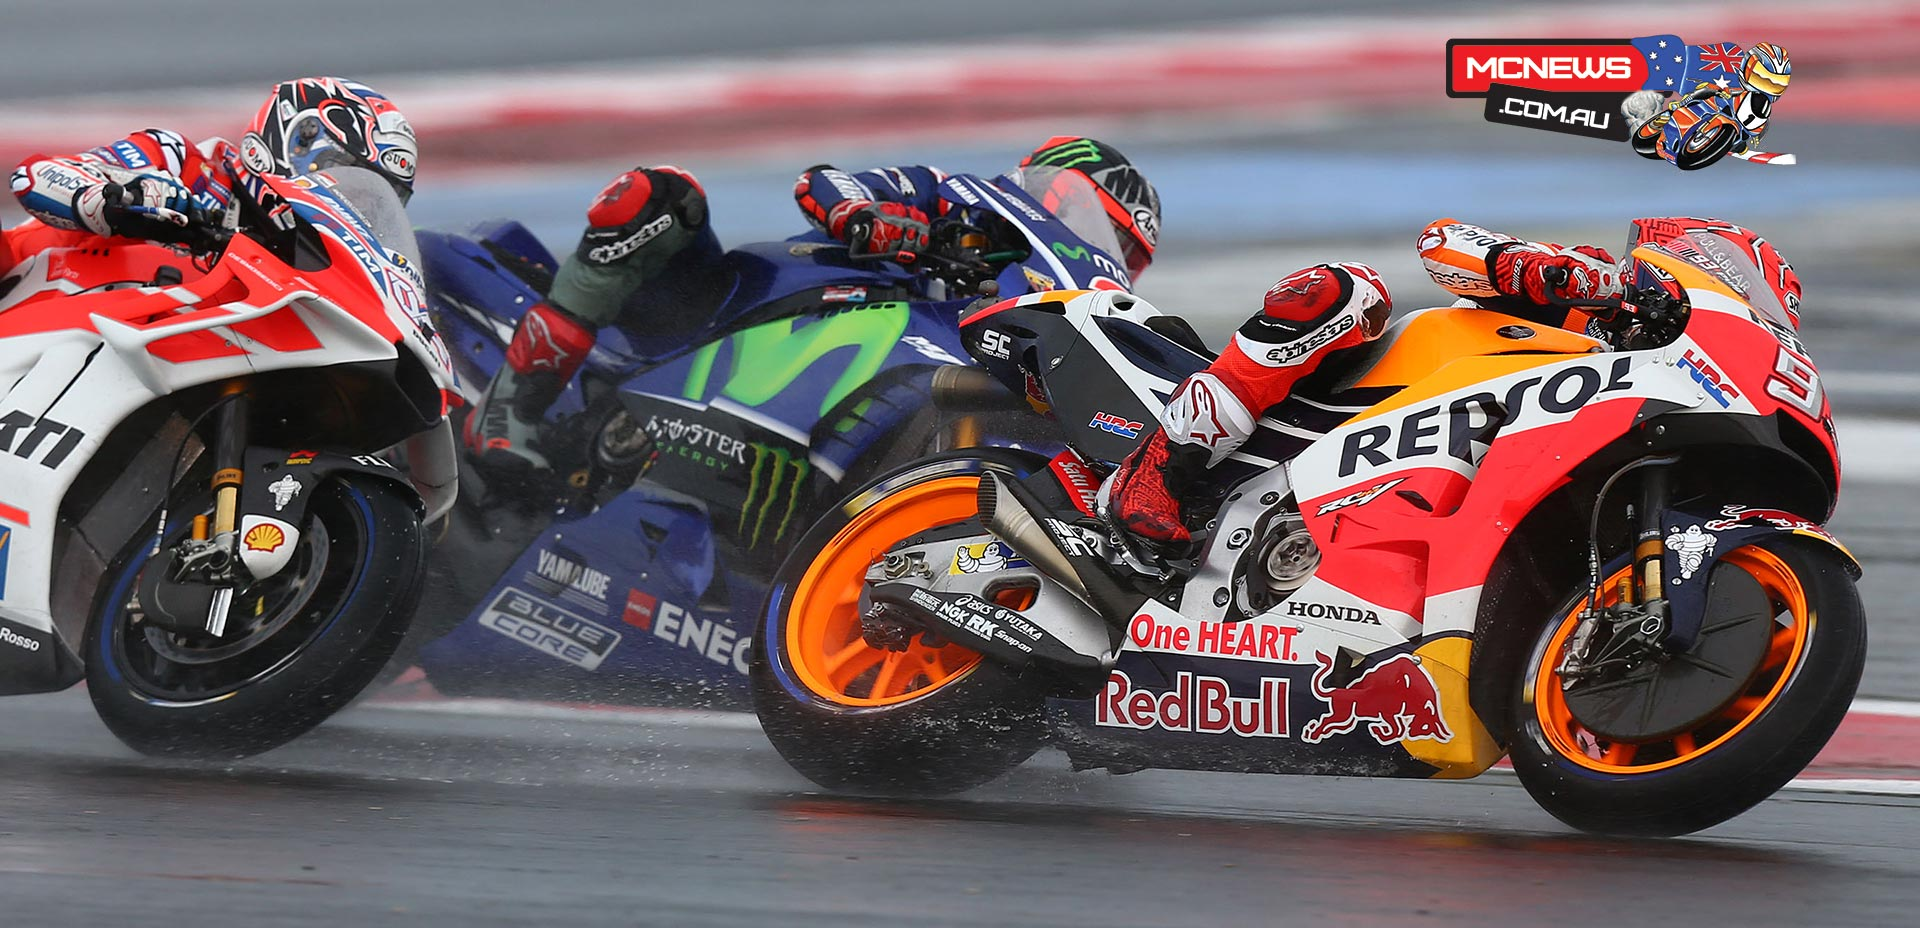 Brembo 40 Years Of Winning In Motogp Motorcycle News Sport And Reviews